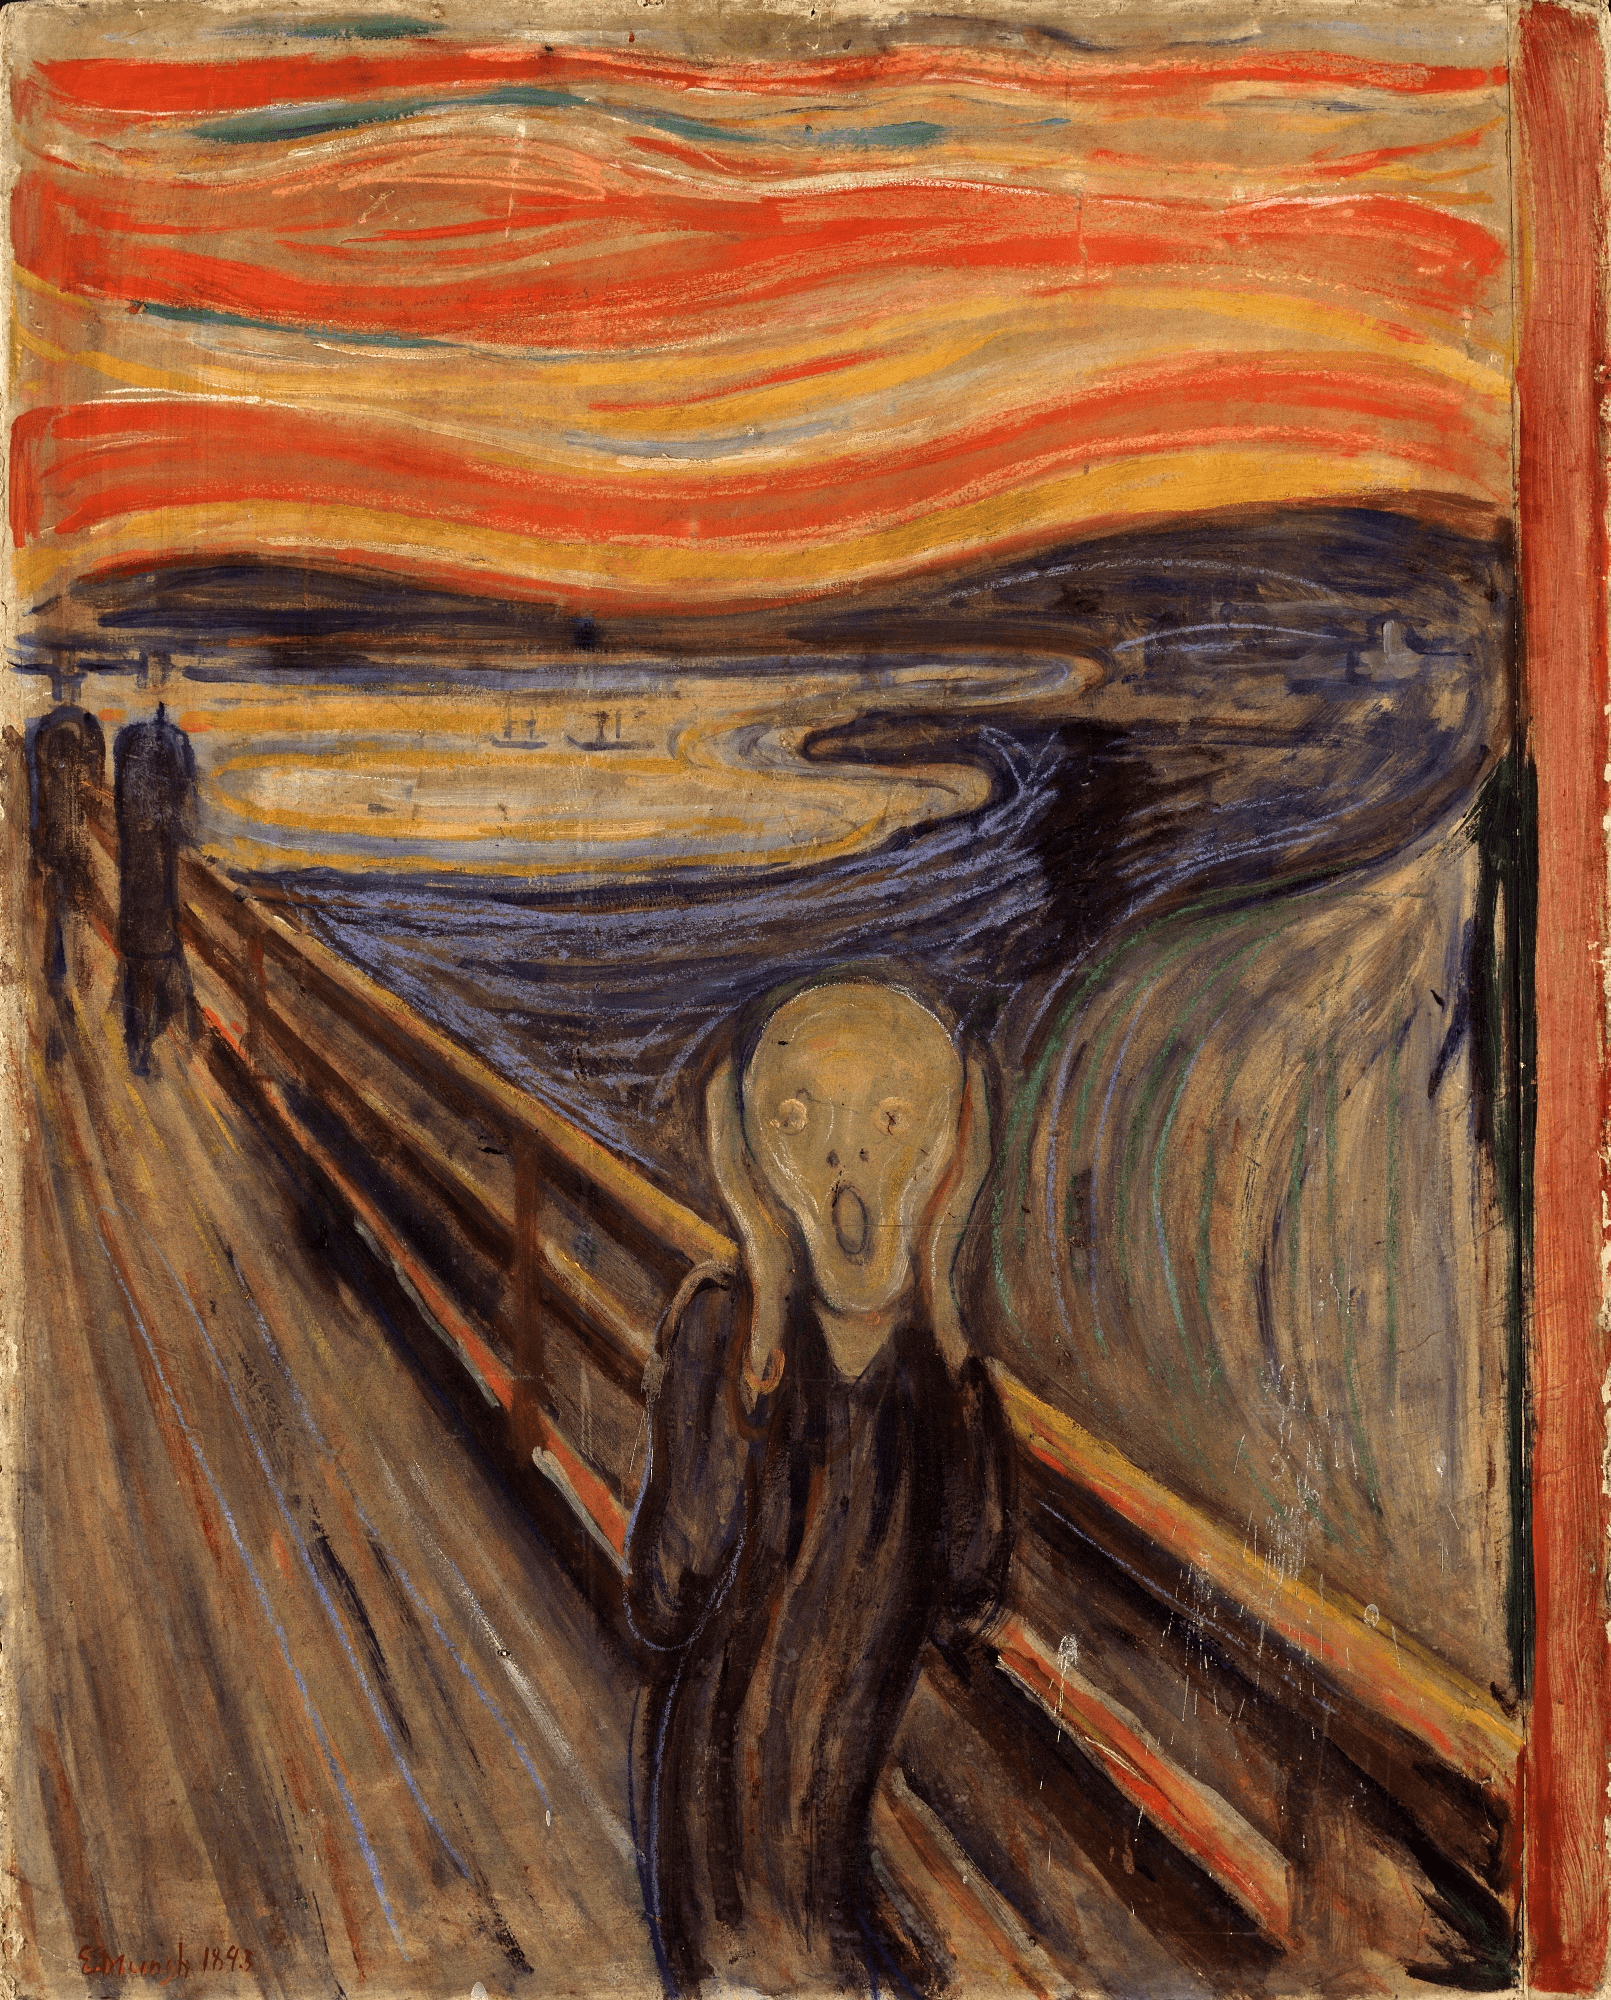 The Scream by Edvard Munch, Art facts